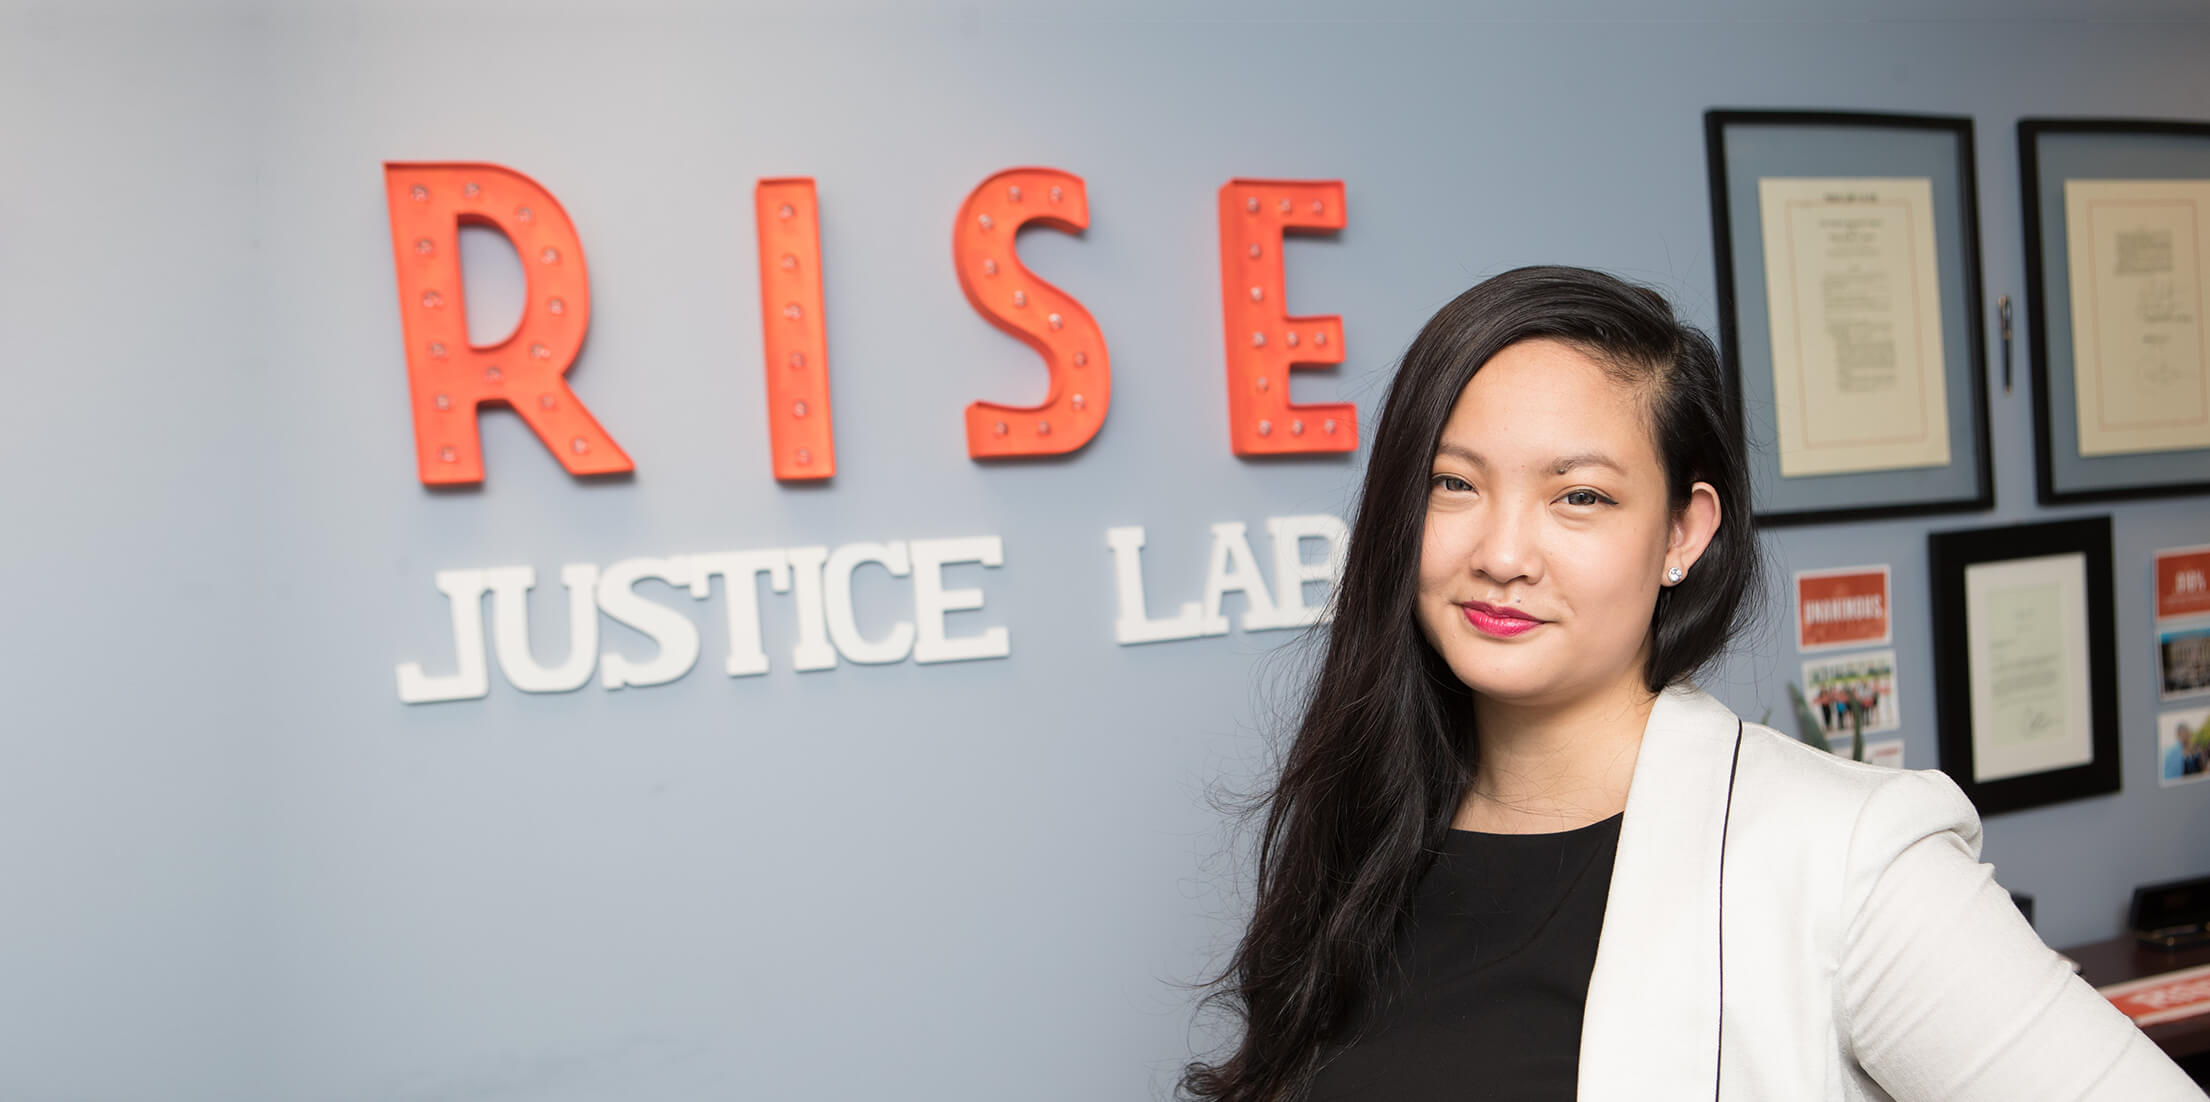 August 12, 2017 | Amanda Nguyen, founder of Rise, a civil rights non-profit that supports survivors of rape and sexual assault, in her Washington D.C. office. Photograph by Ting Shen